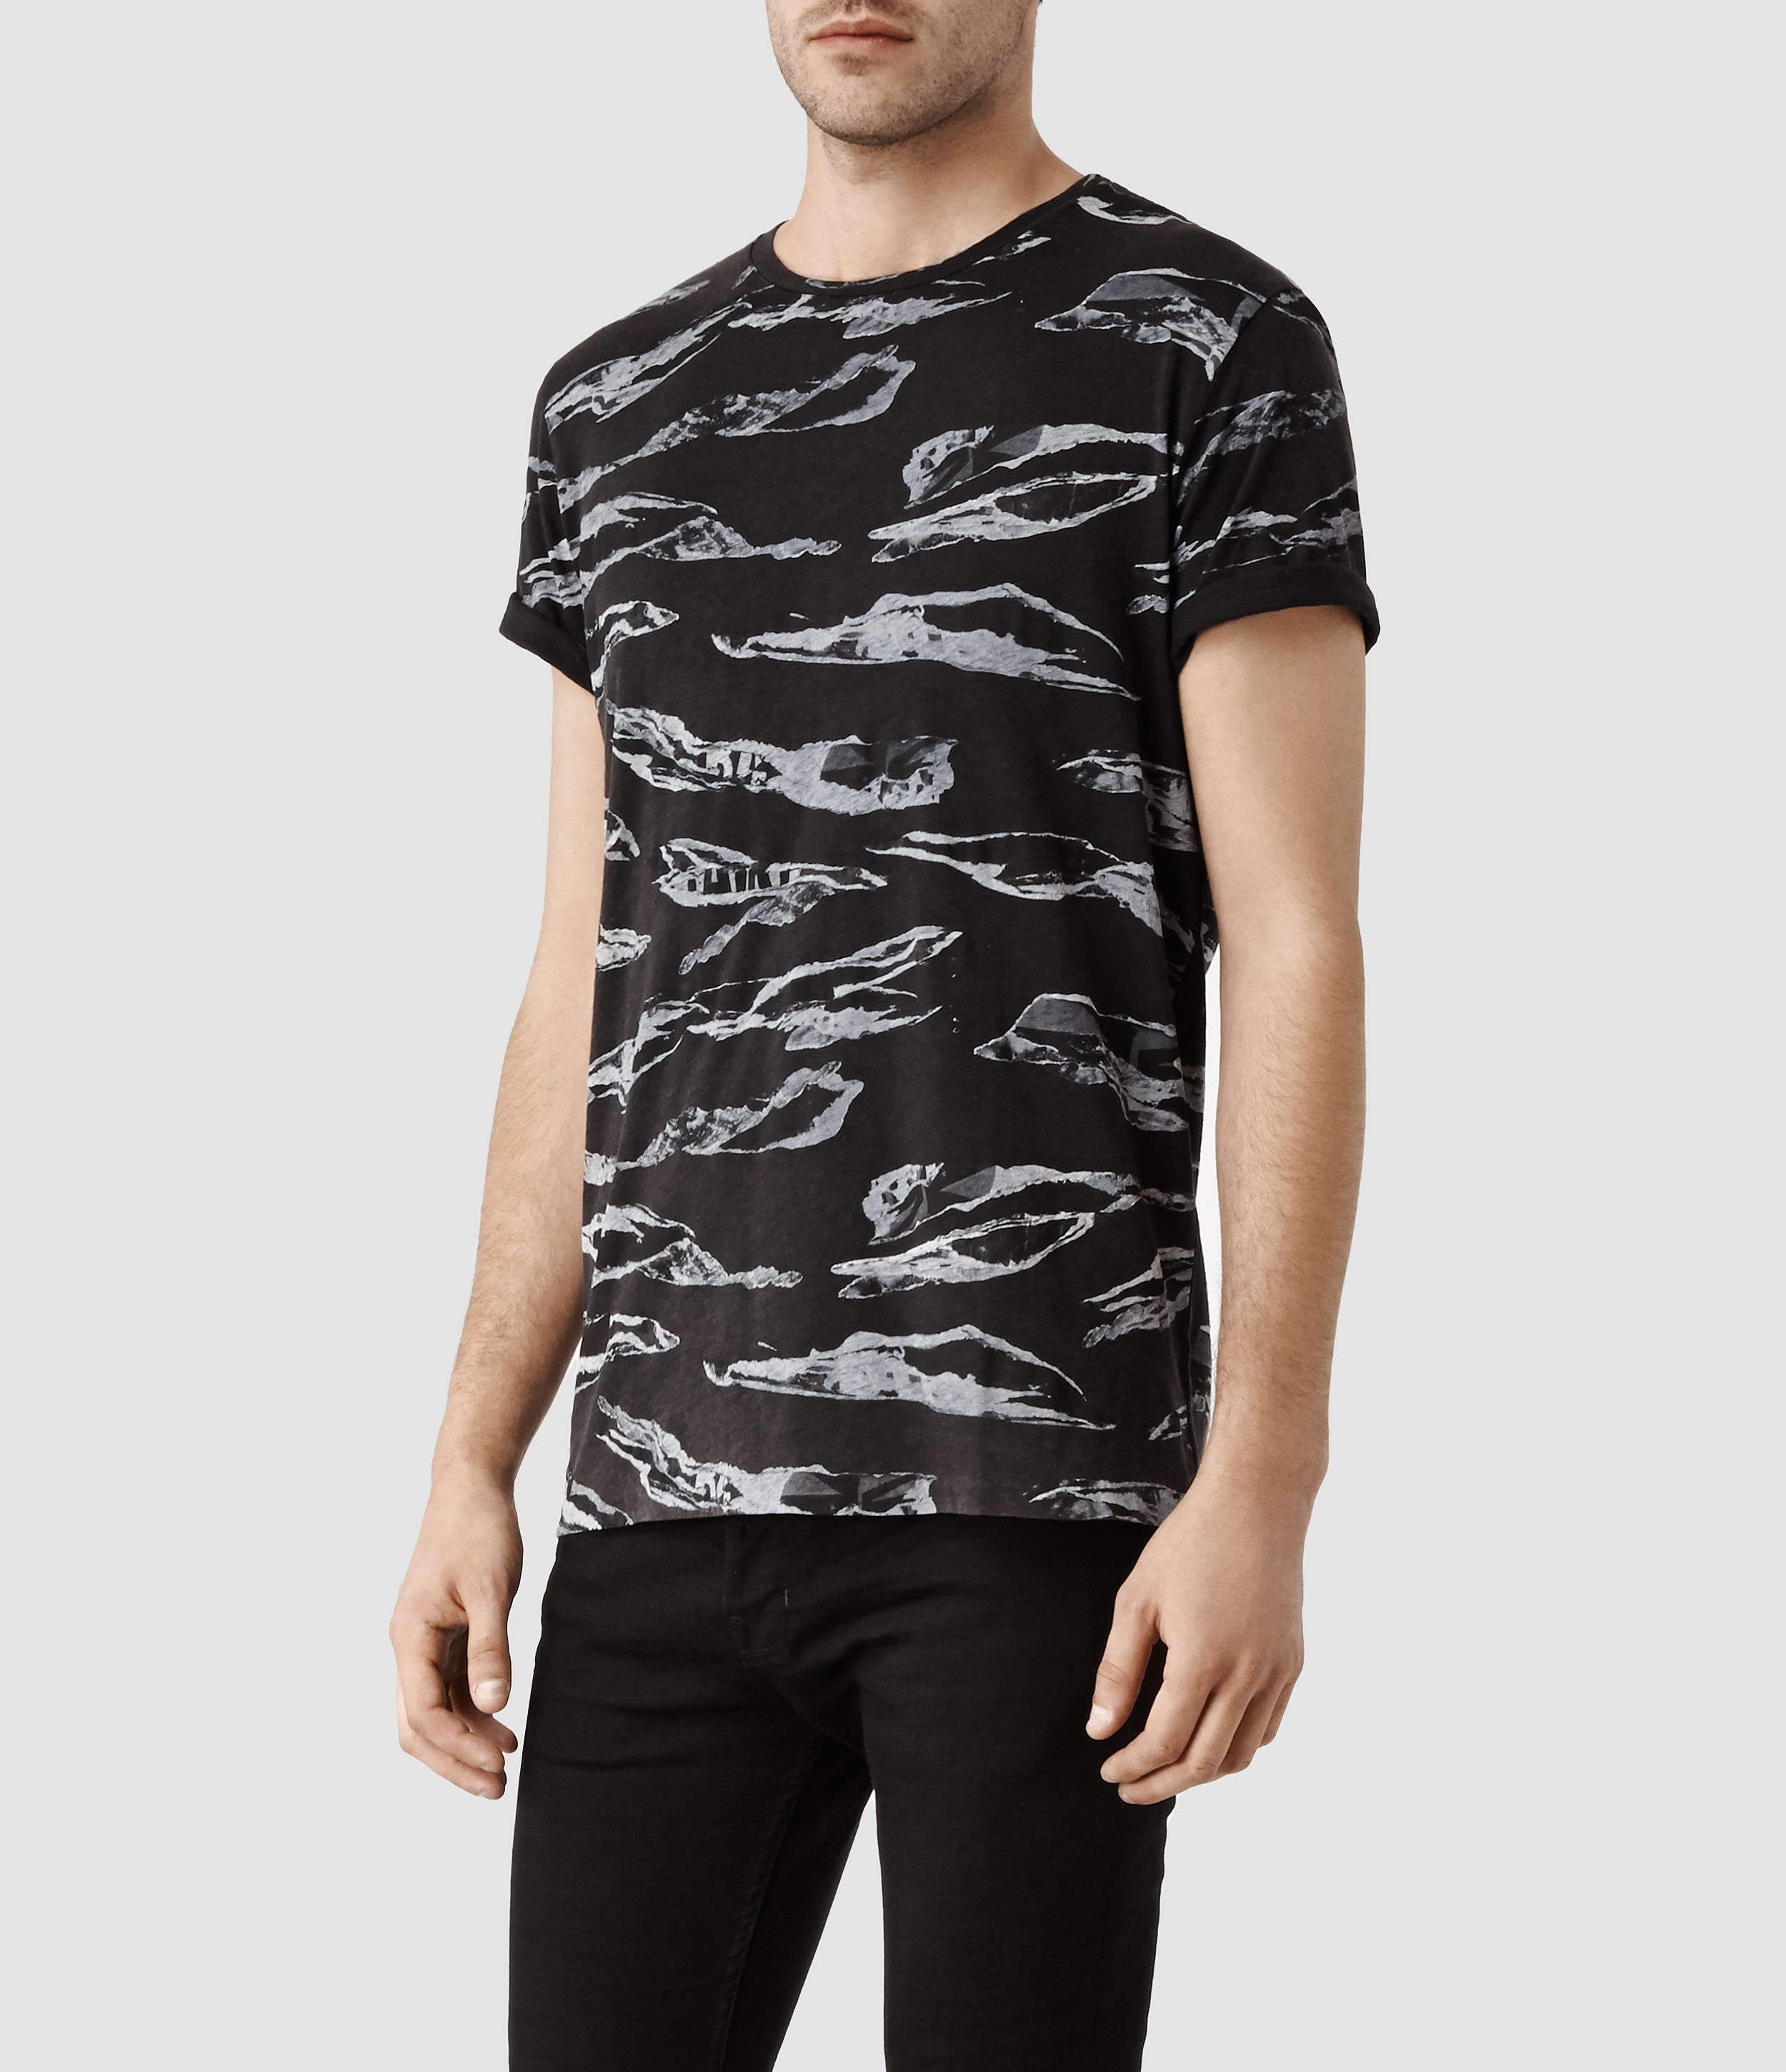 Lyst - AllSaints Ripped Camo Crew T-Shirt in Black for Men 224321e95